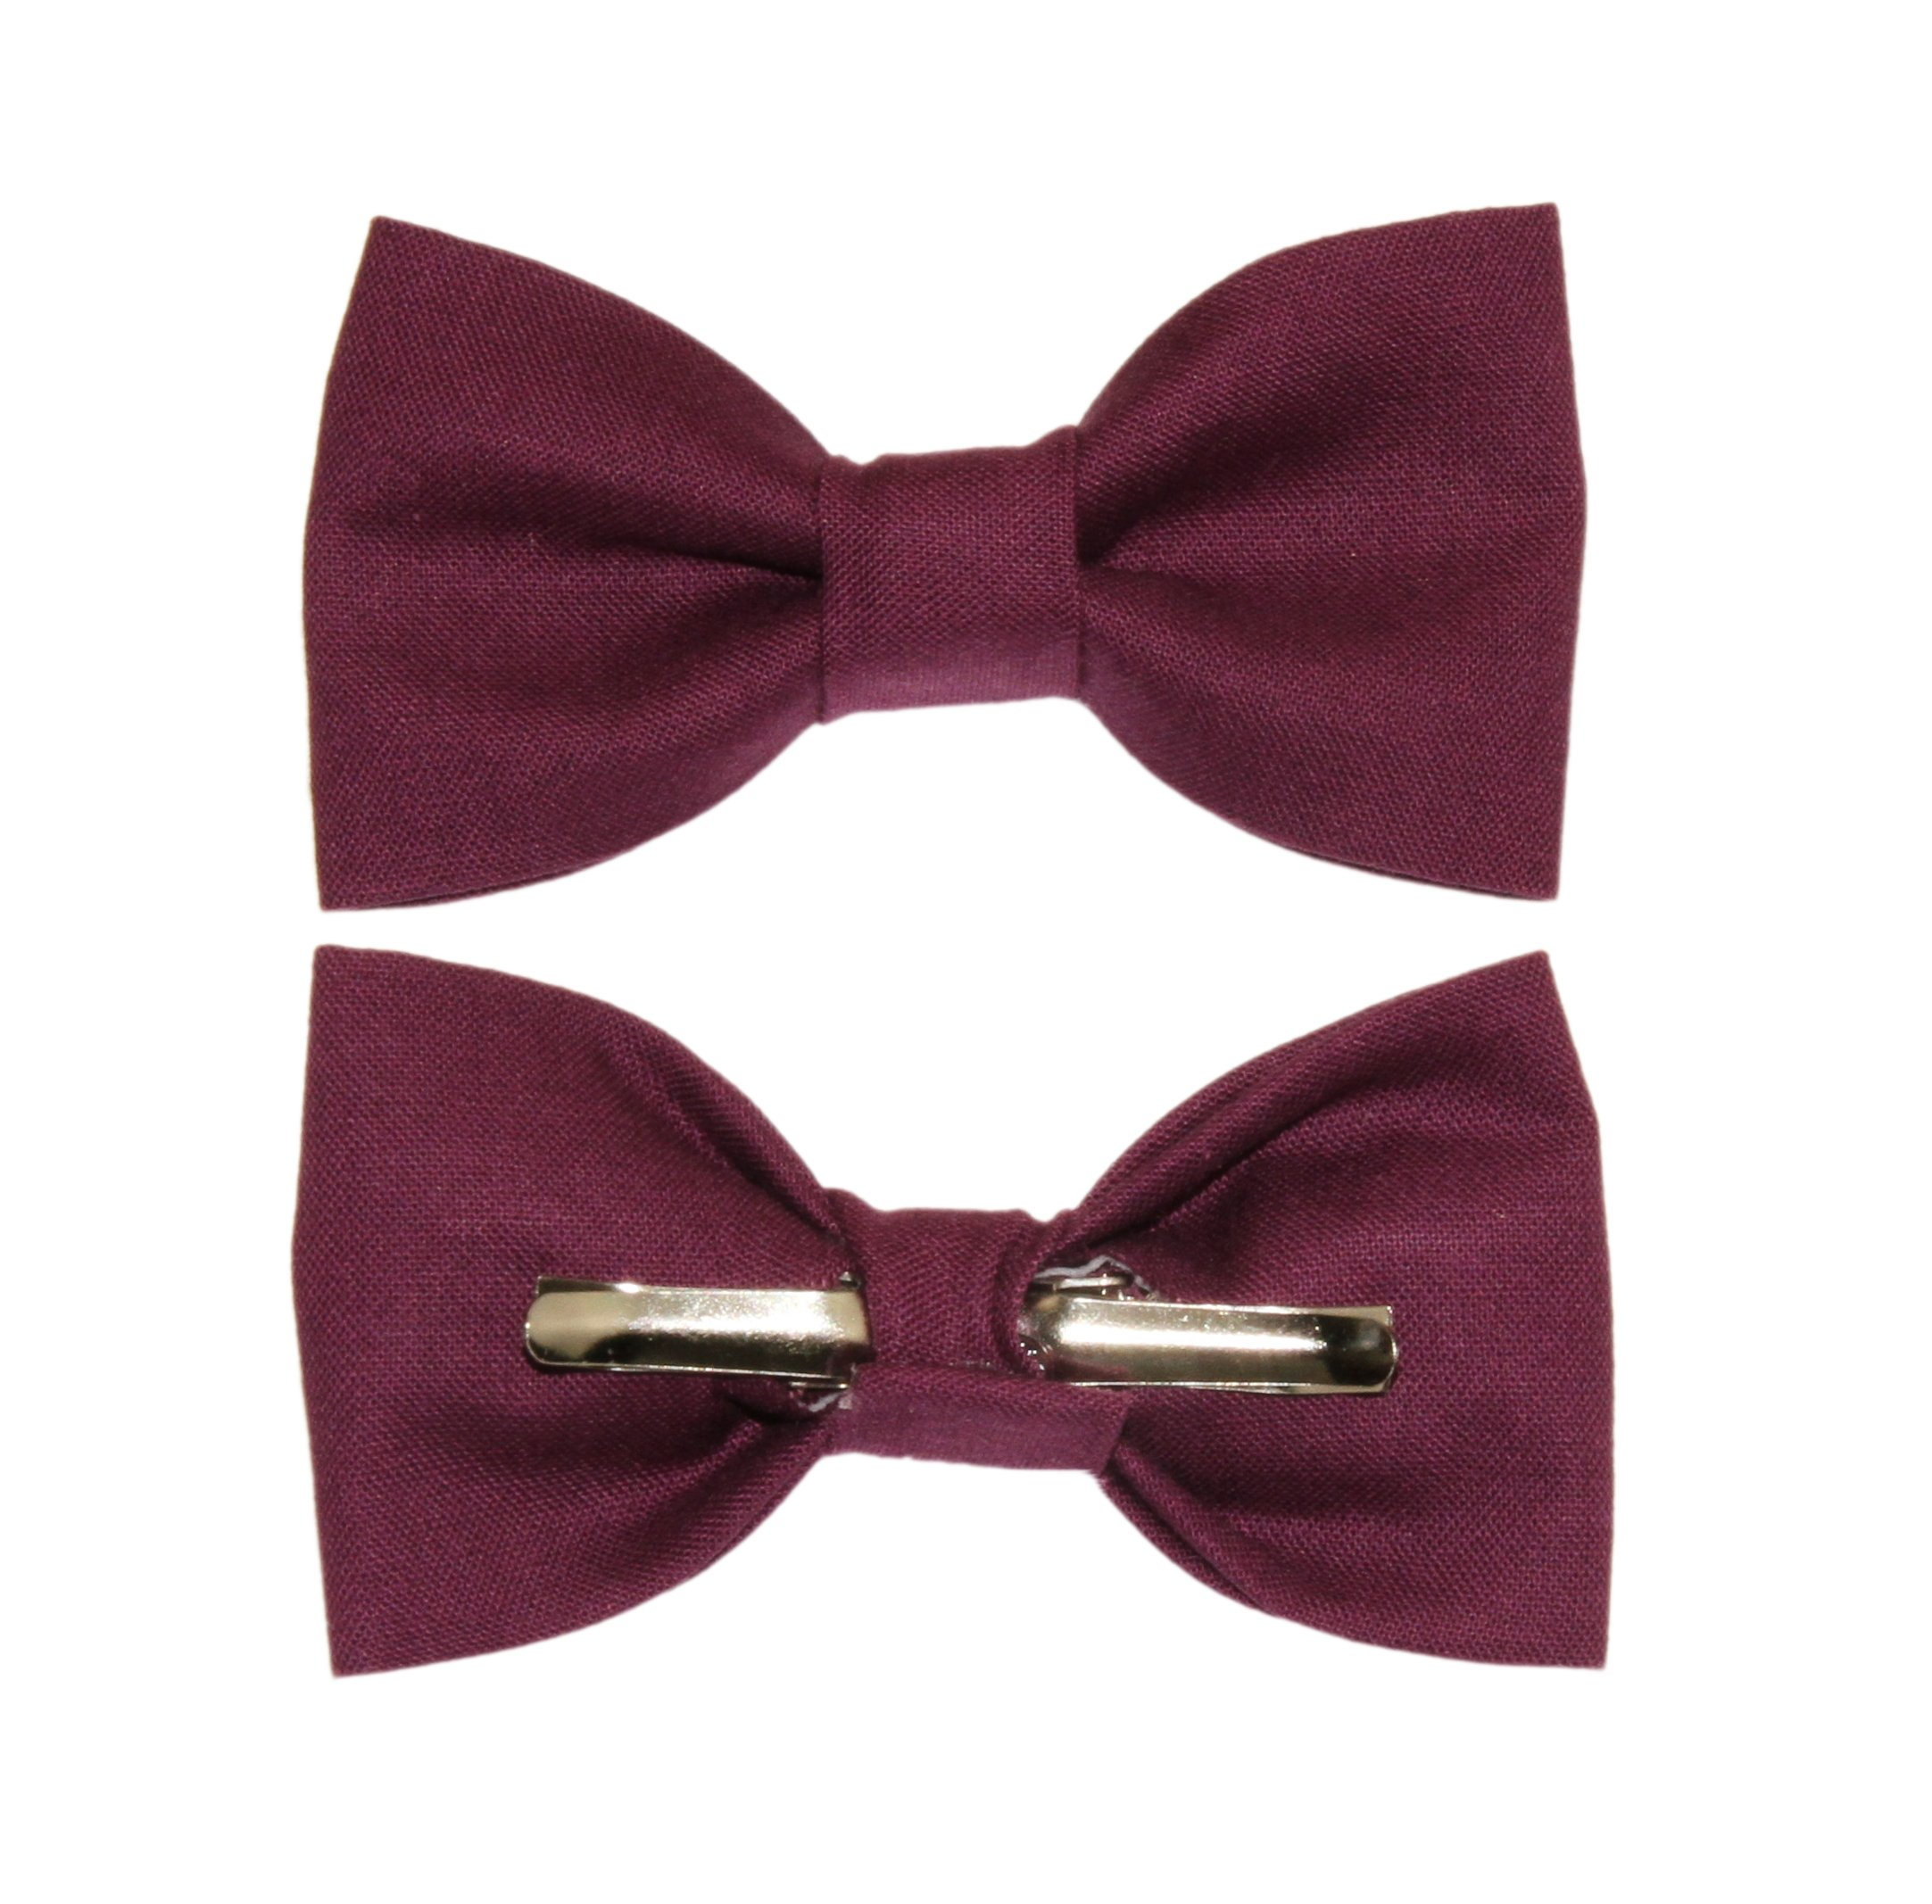 Toddler Boy 4T 5T Eggplant Purple Clip On Cotton Bow Tie amy2004marie